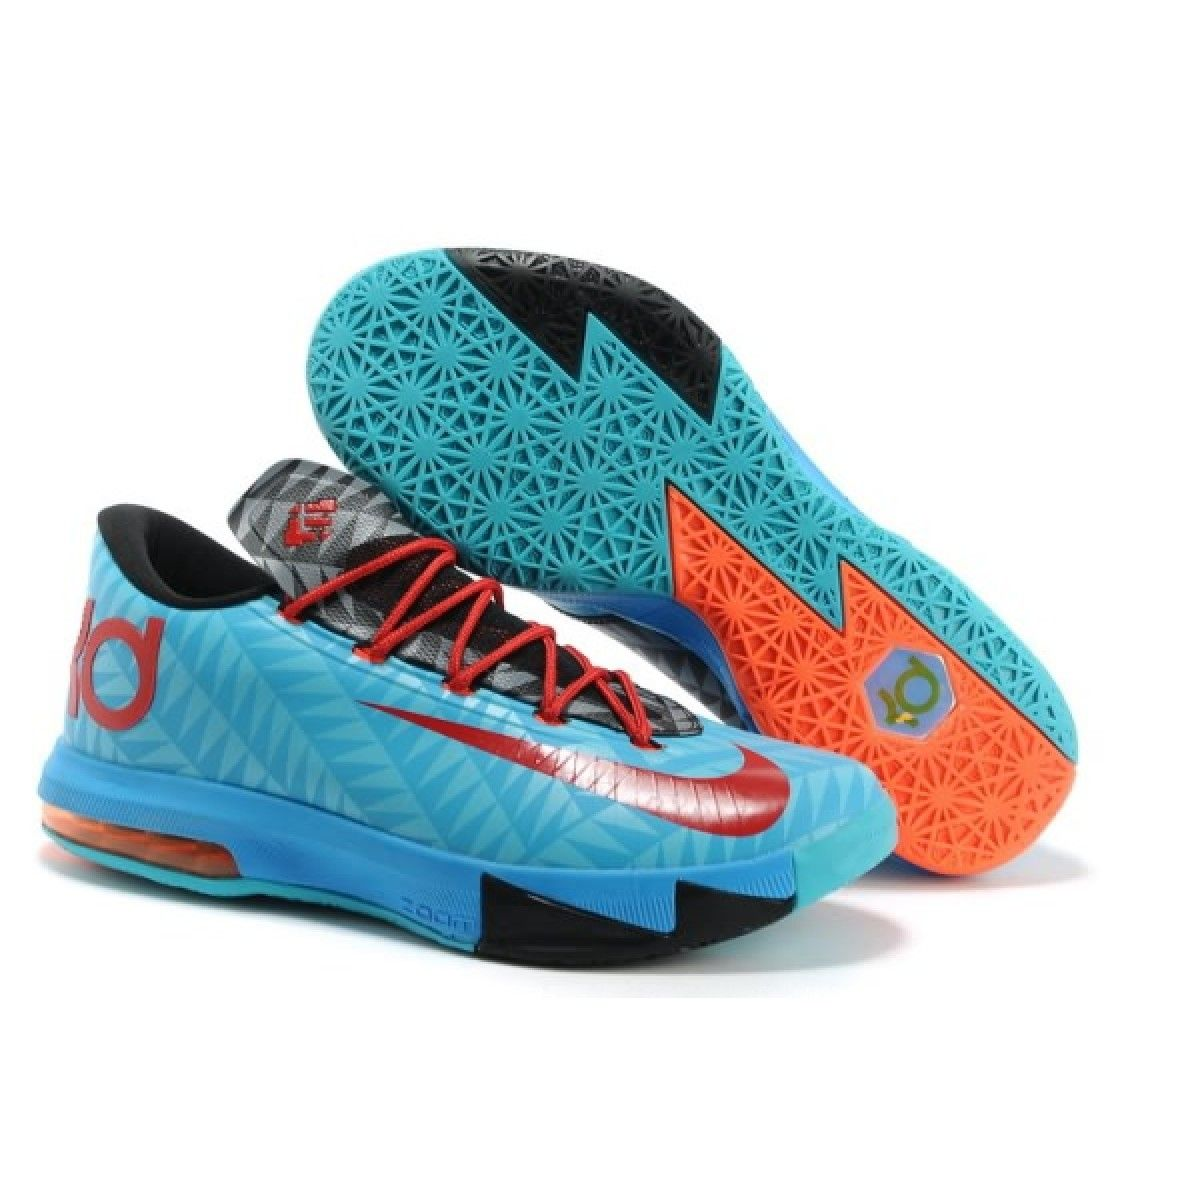 kevin durant shoes | Home 2014 All Star Kevin Durant's shoes Nike Zoom  Kevin Durant's KD